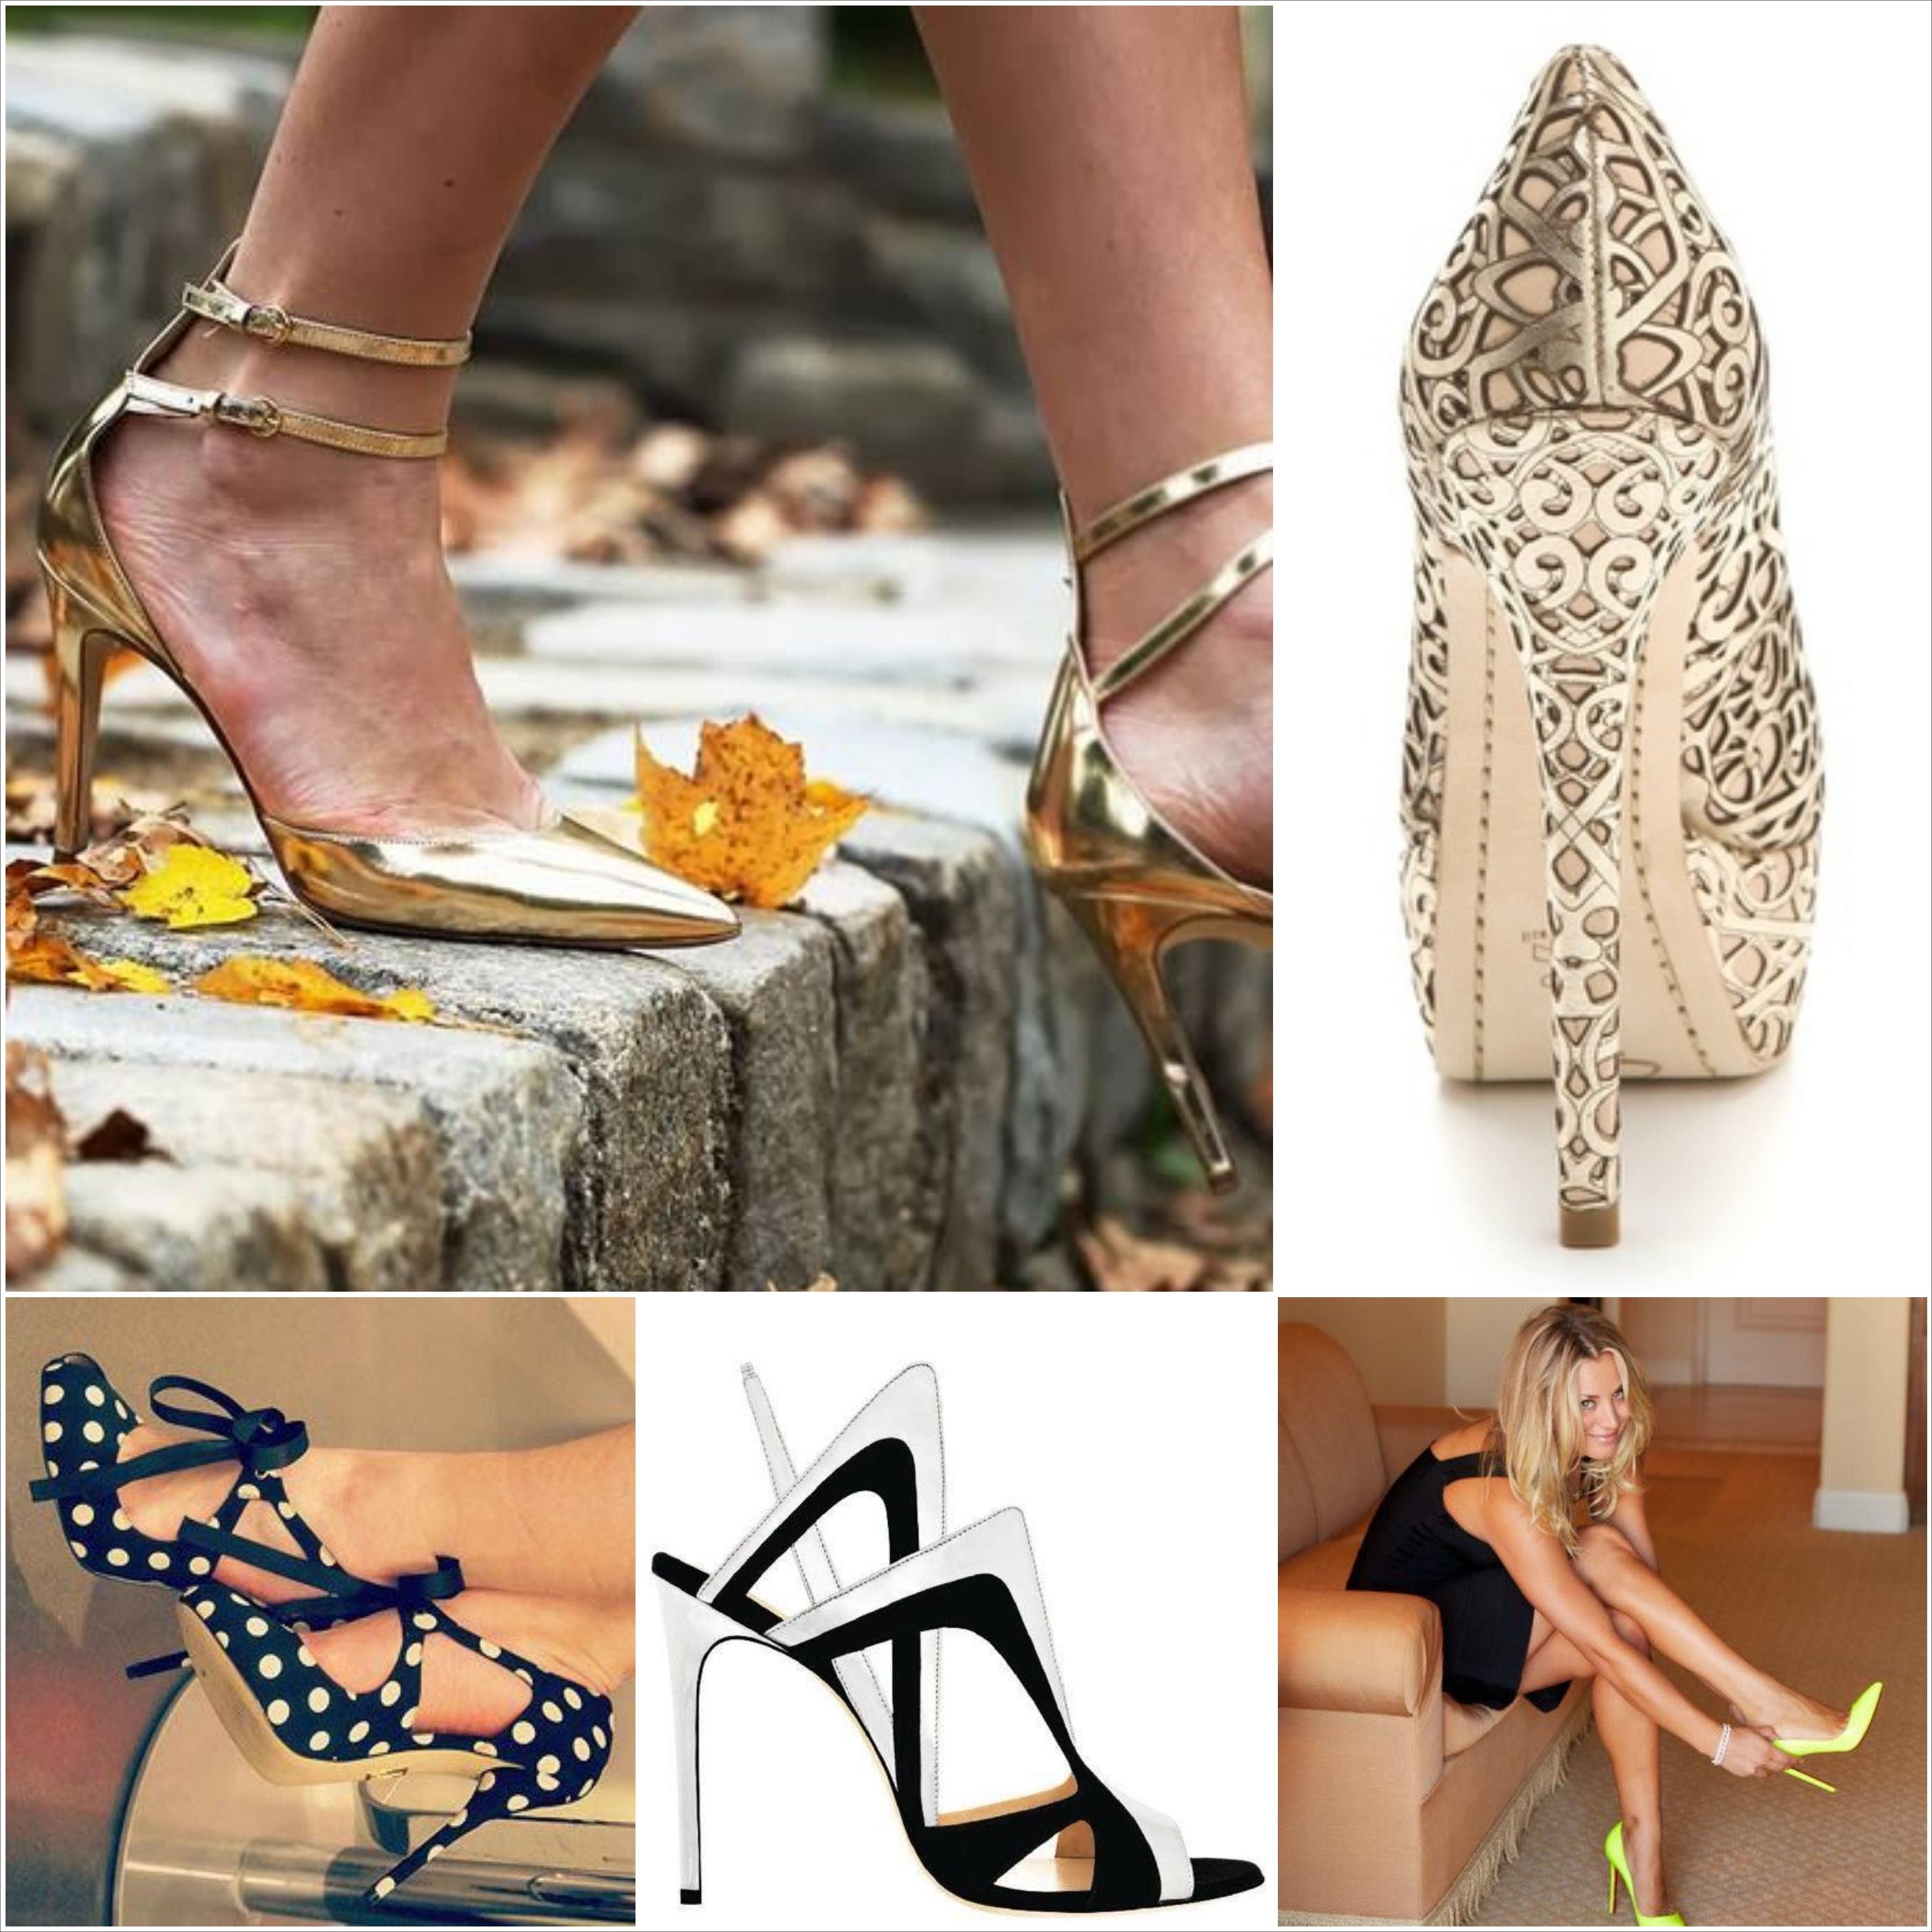 Top Shoe Pinterest Images Of The Week October 20 2013